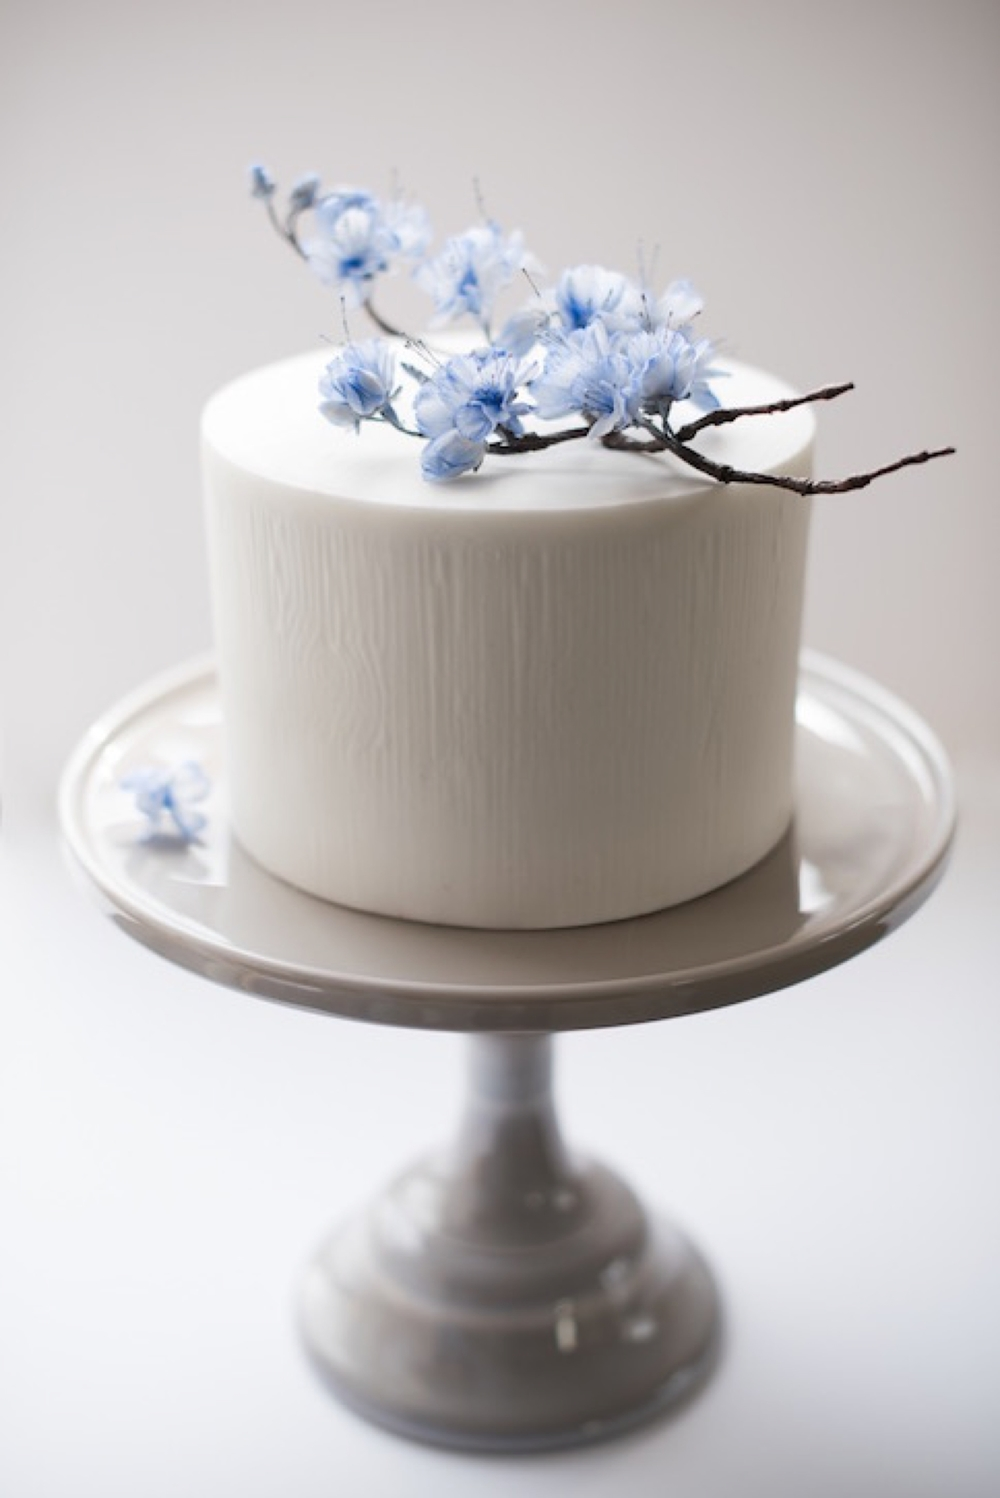 Making small wedding cakes beautiful sonnda catto braw brides i designed this cherry blossom wedding cake for an intimate springtime wedding it features a 6 inch round which serves approximately 20 people junglespirit Images